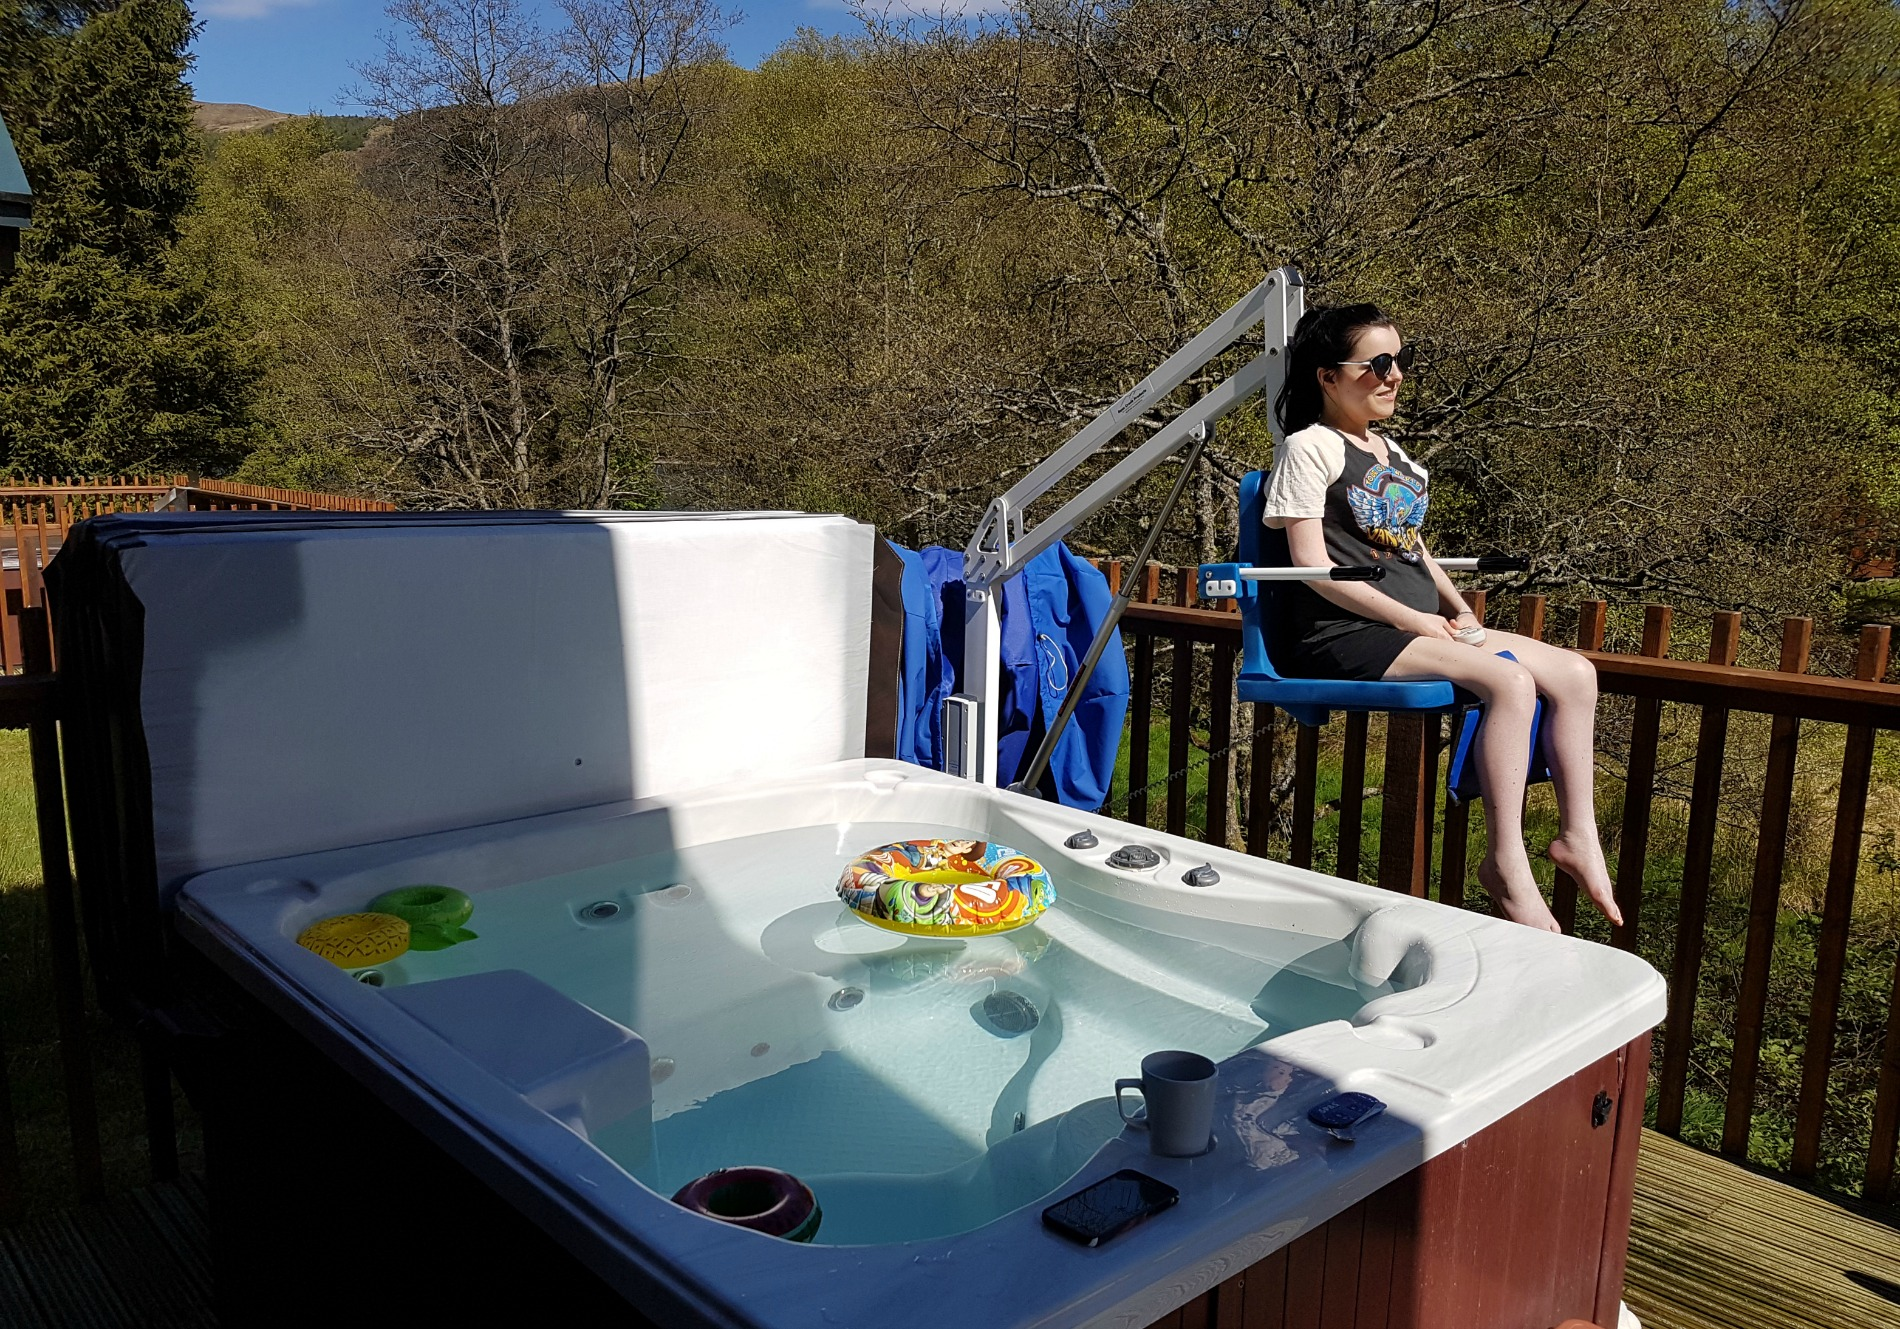 Forest Holidays Strathyre Accessible Silver Birch Cabin with hot tub hoist: My Top 5 Best Travel Moments of 2017